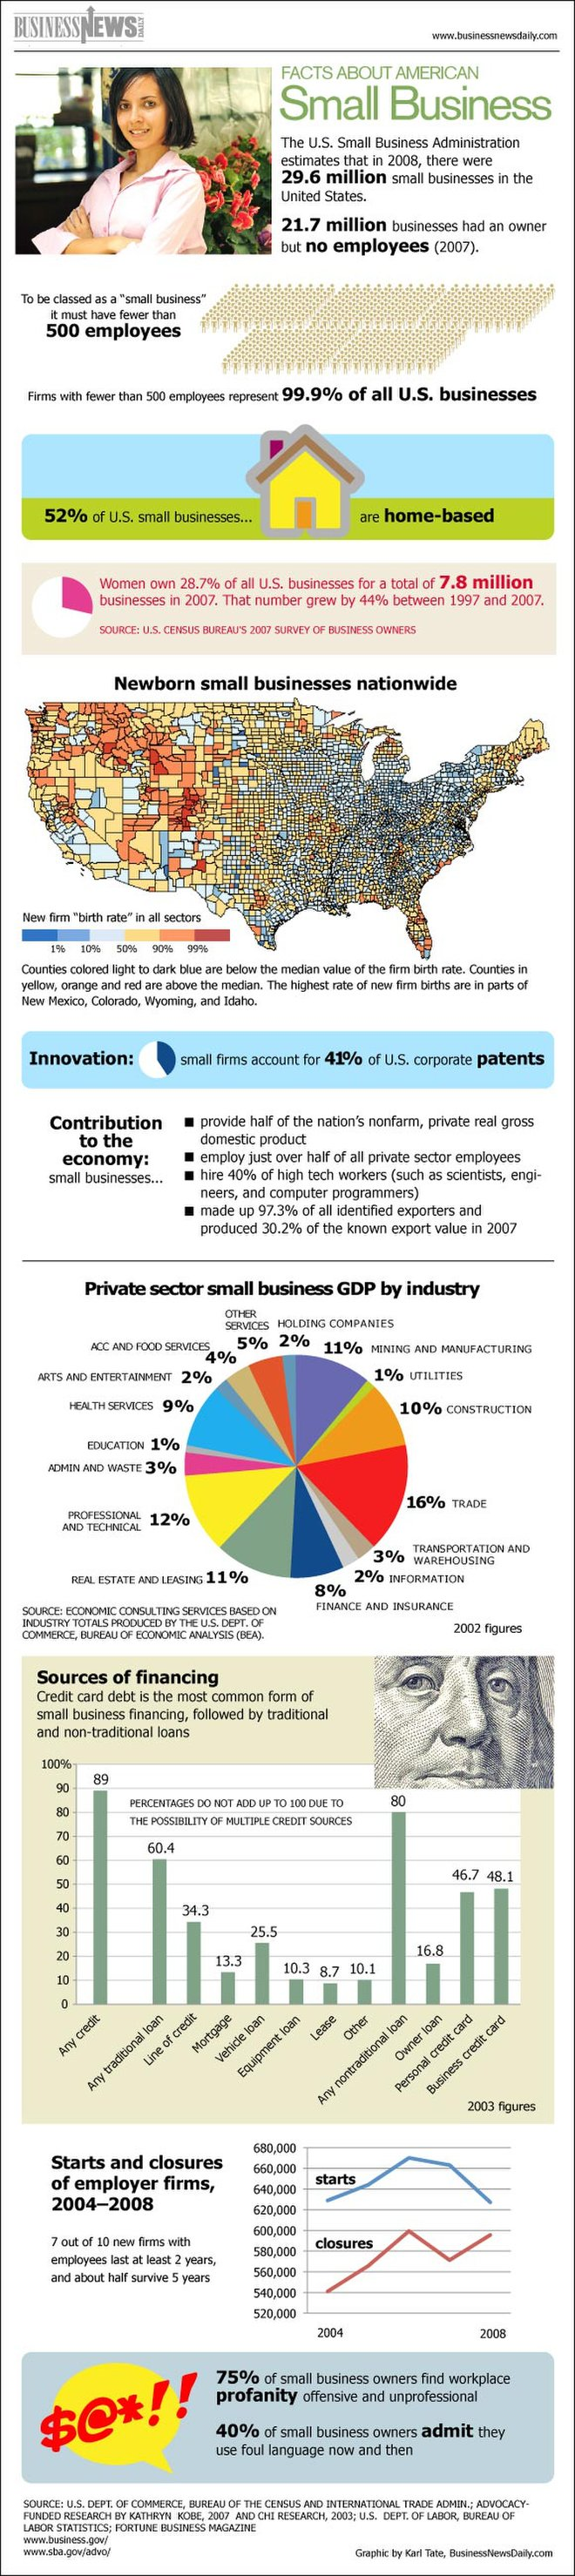 Infographic: U.S. Small Business Facts